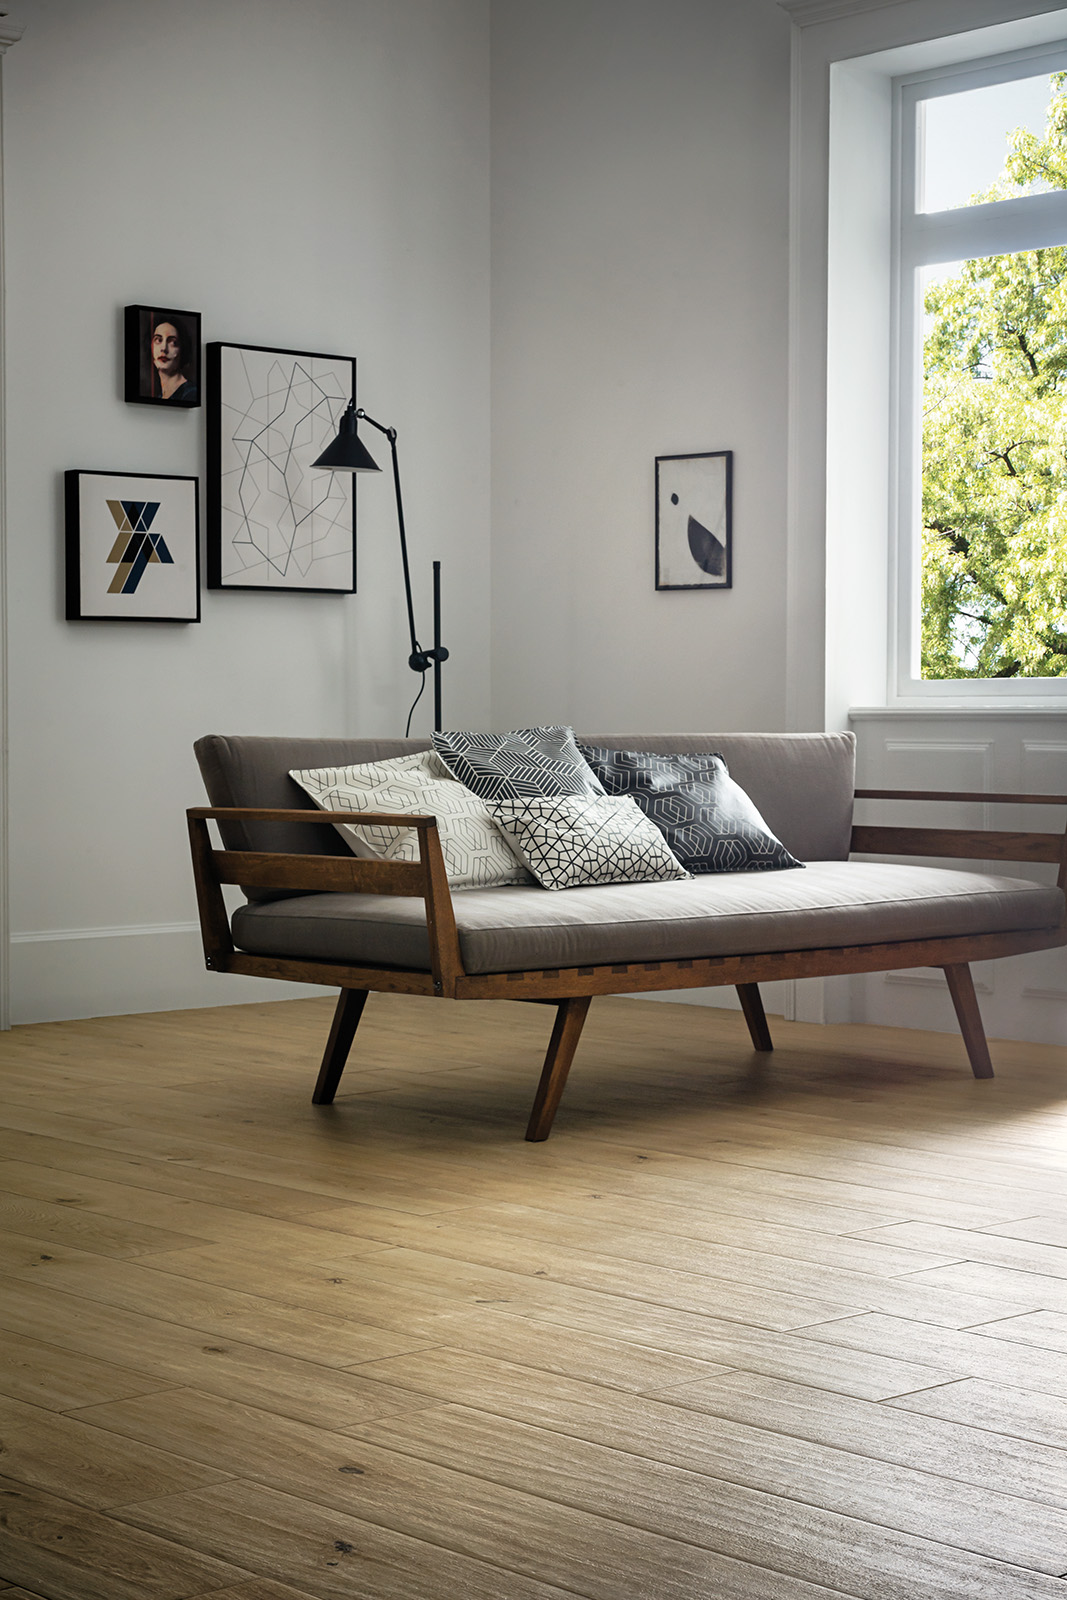 Living Room Floor: Inspiration For Your Furniture